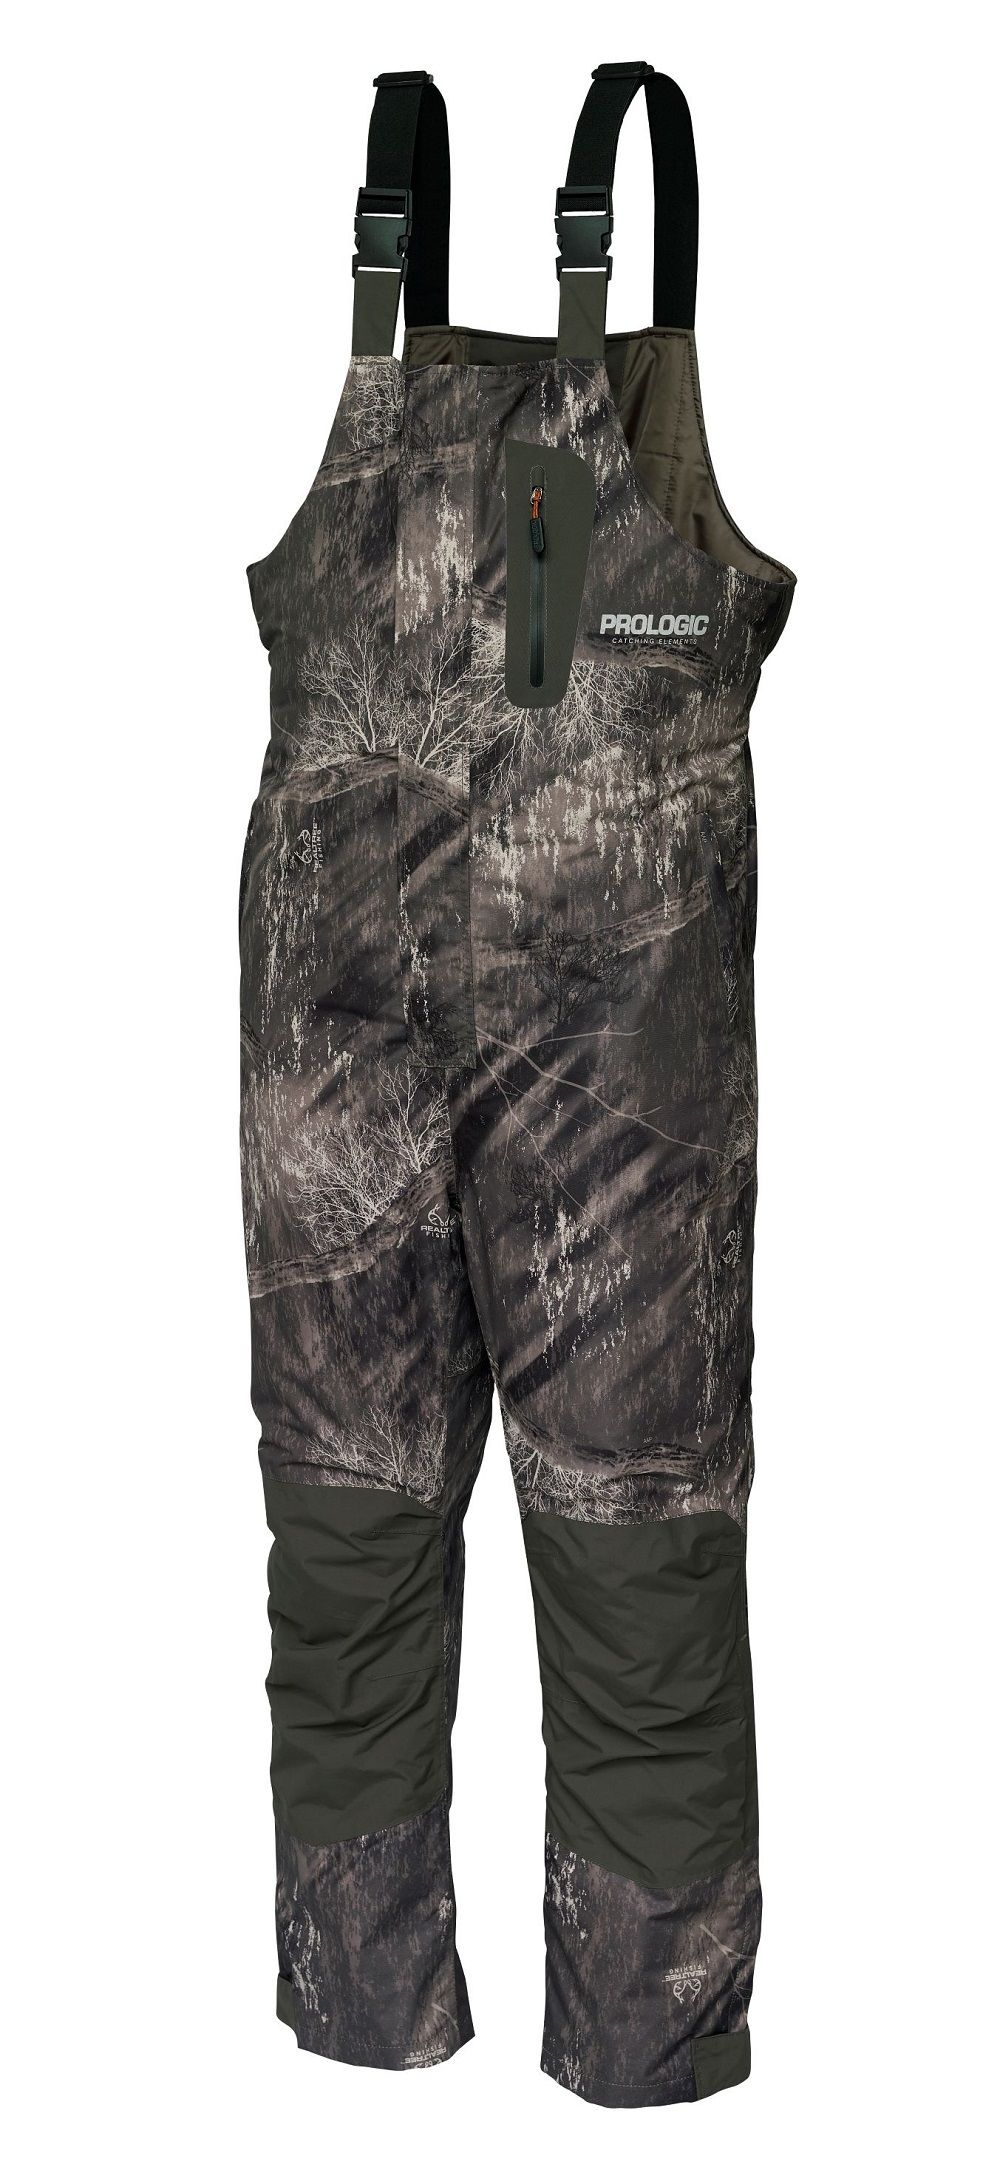 Prologic HighGrade Realtree Thermo Suit 2 Pièces thermoanzug Hiver Costume camou